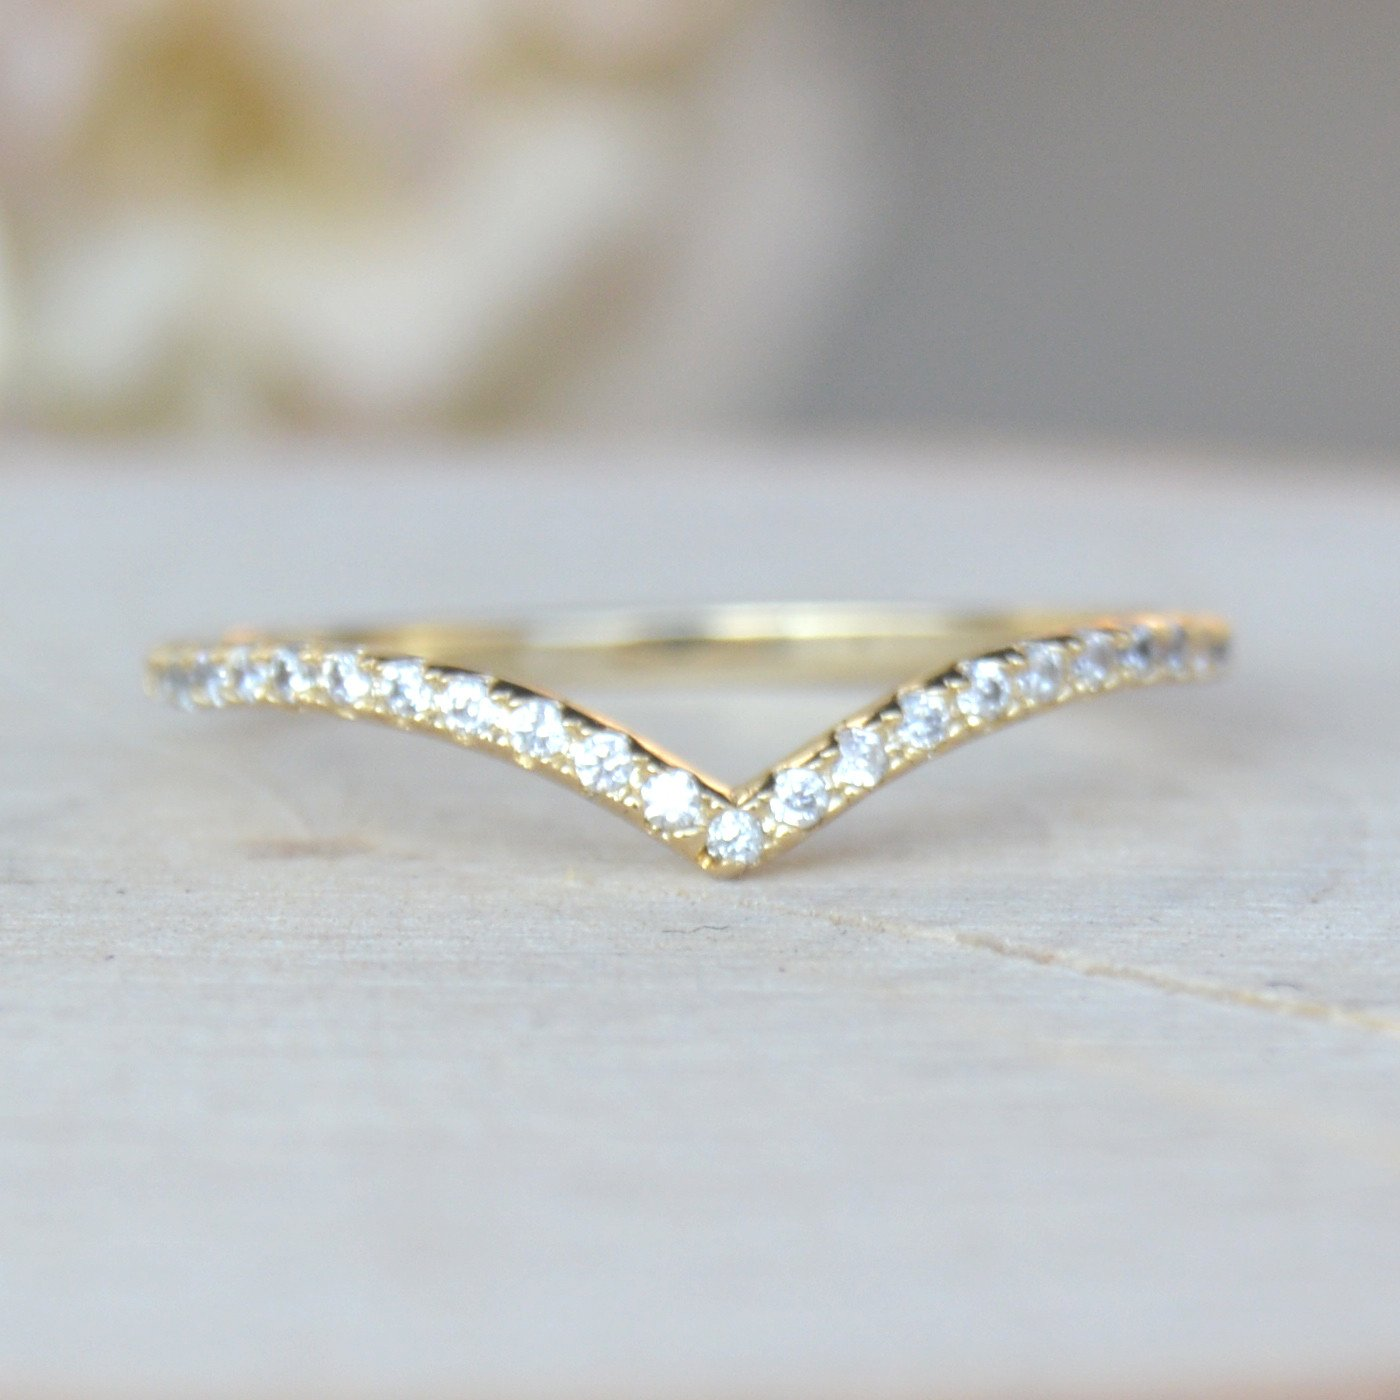 V Ring - Gold | Ring, Gold and Stylish jewelry